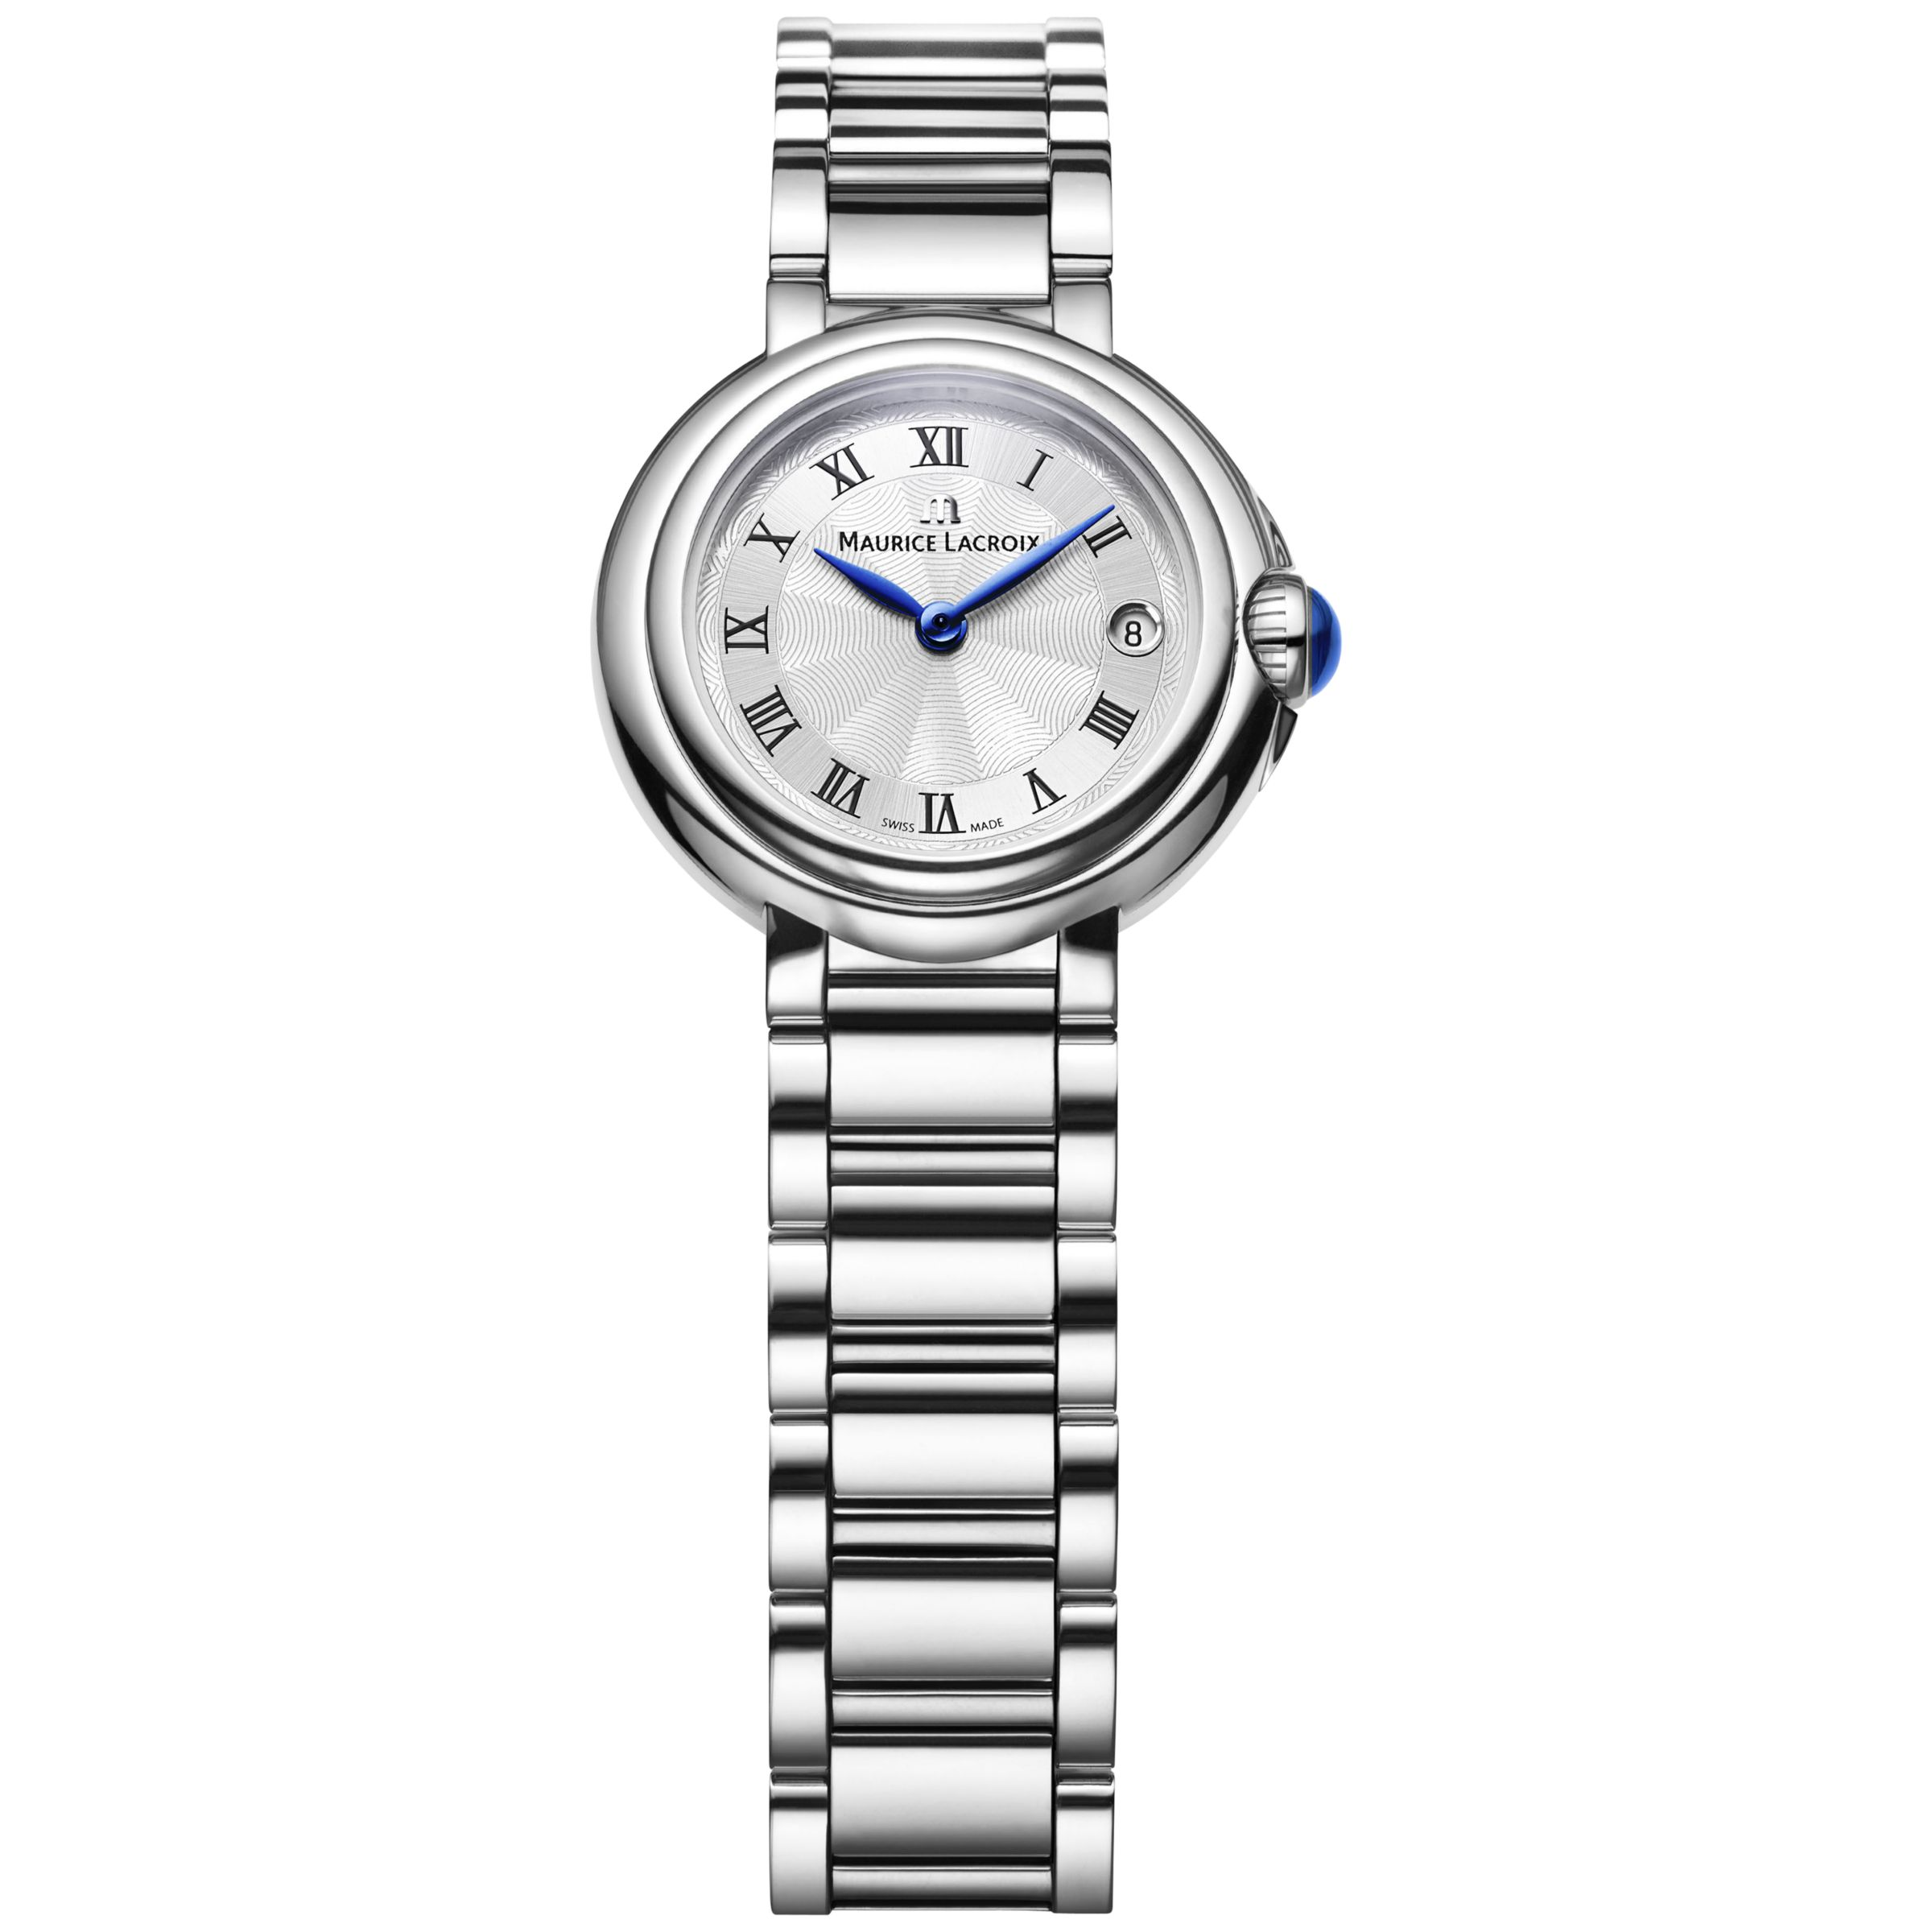 Maurice Lacroix Maurice Lacroix FA1003-SS002-110 Women's Stainless Steel Bracelet Strap Watch, Silver